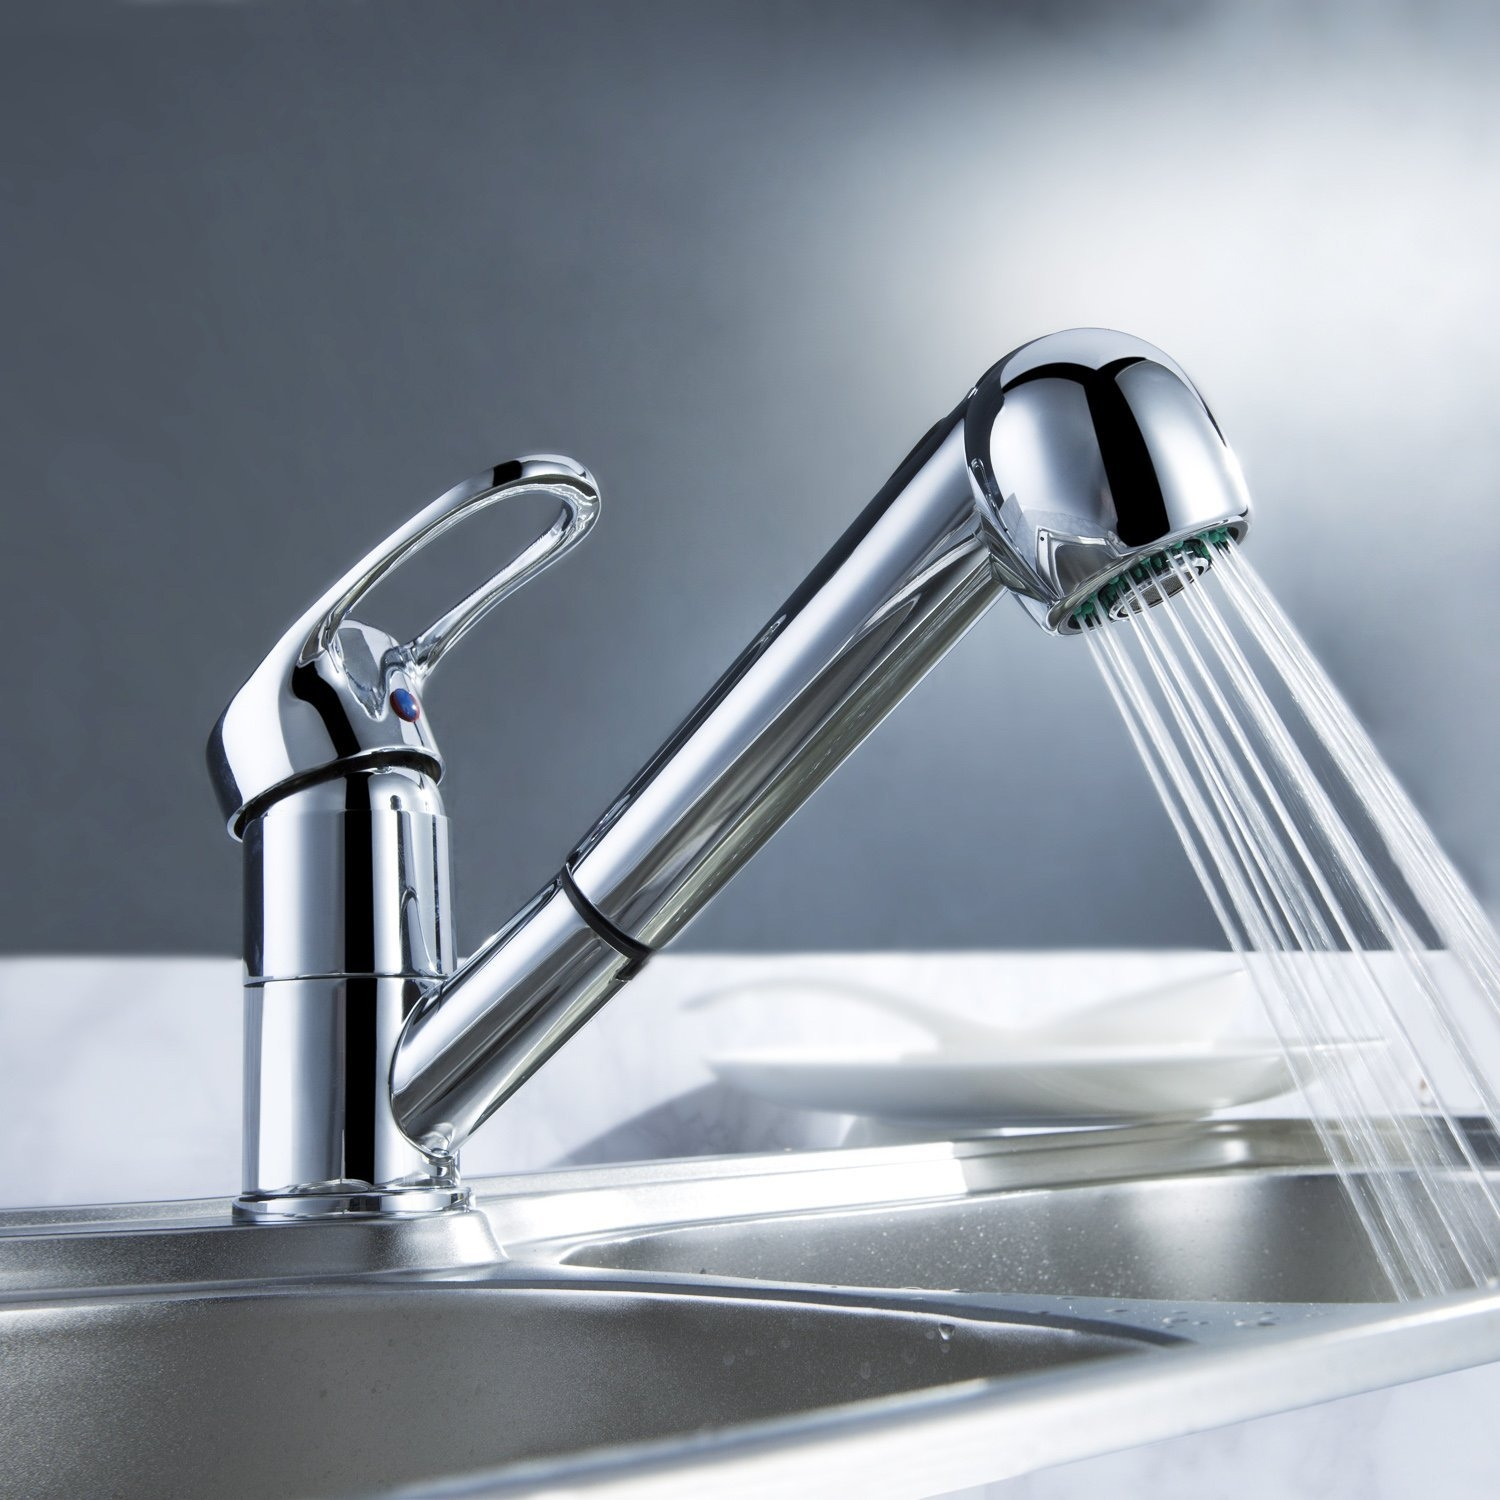 Ideas, kitchen interesting kitchen sink faucet for your kitchen decor inside proportions 1500 x 1500  .